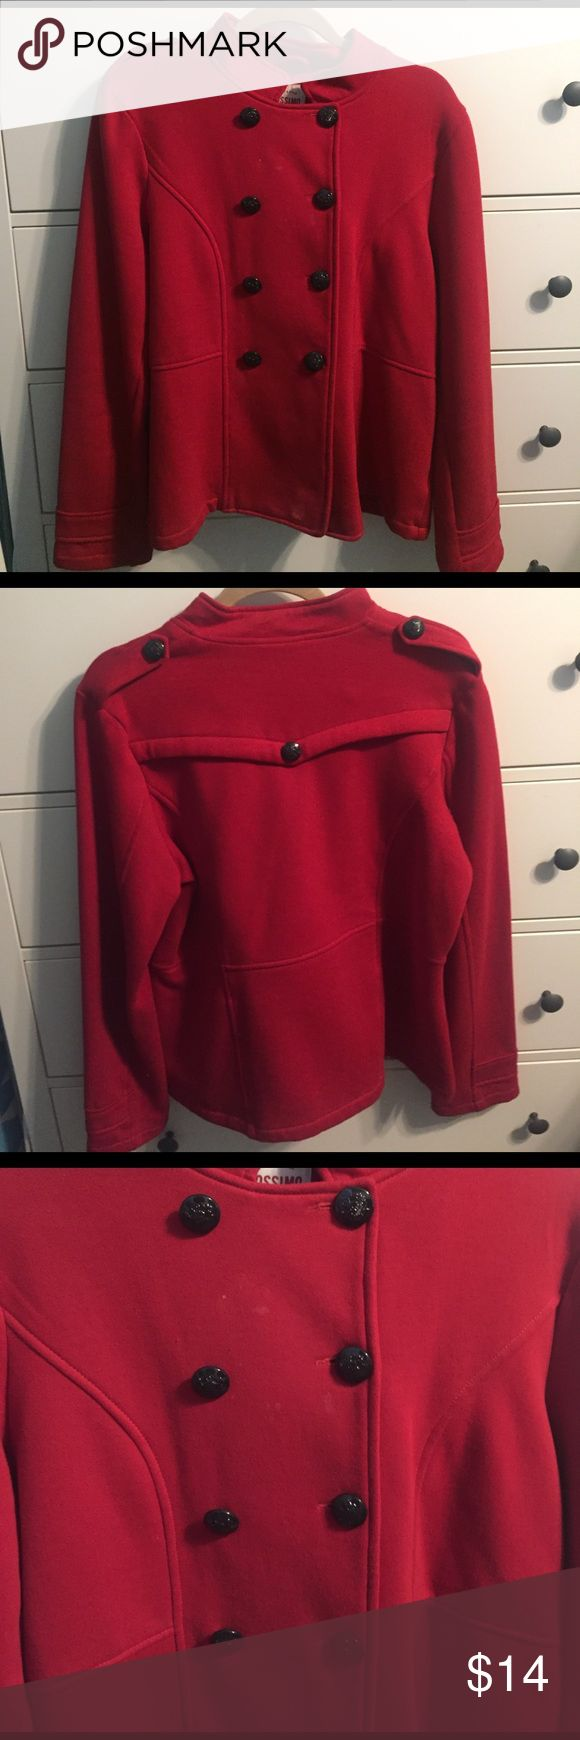 Red Pea Coat Cloth pea coat in great condition. It got lots of compliments! Mossimo Supply Co. Jackets & Coats Pea Coats